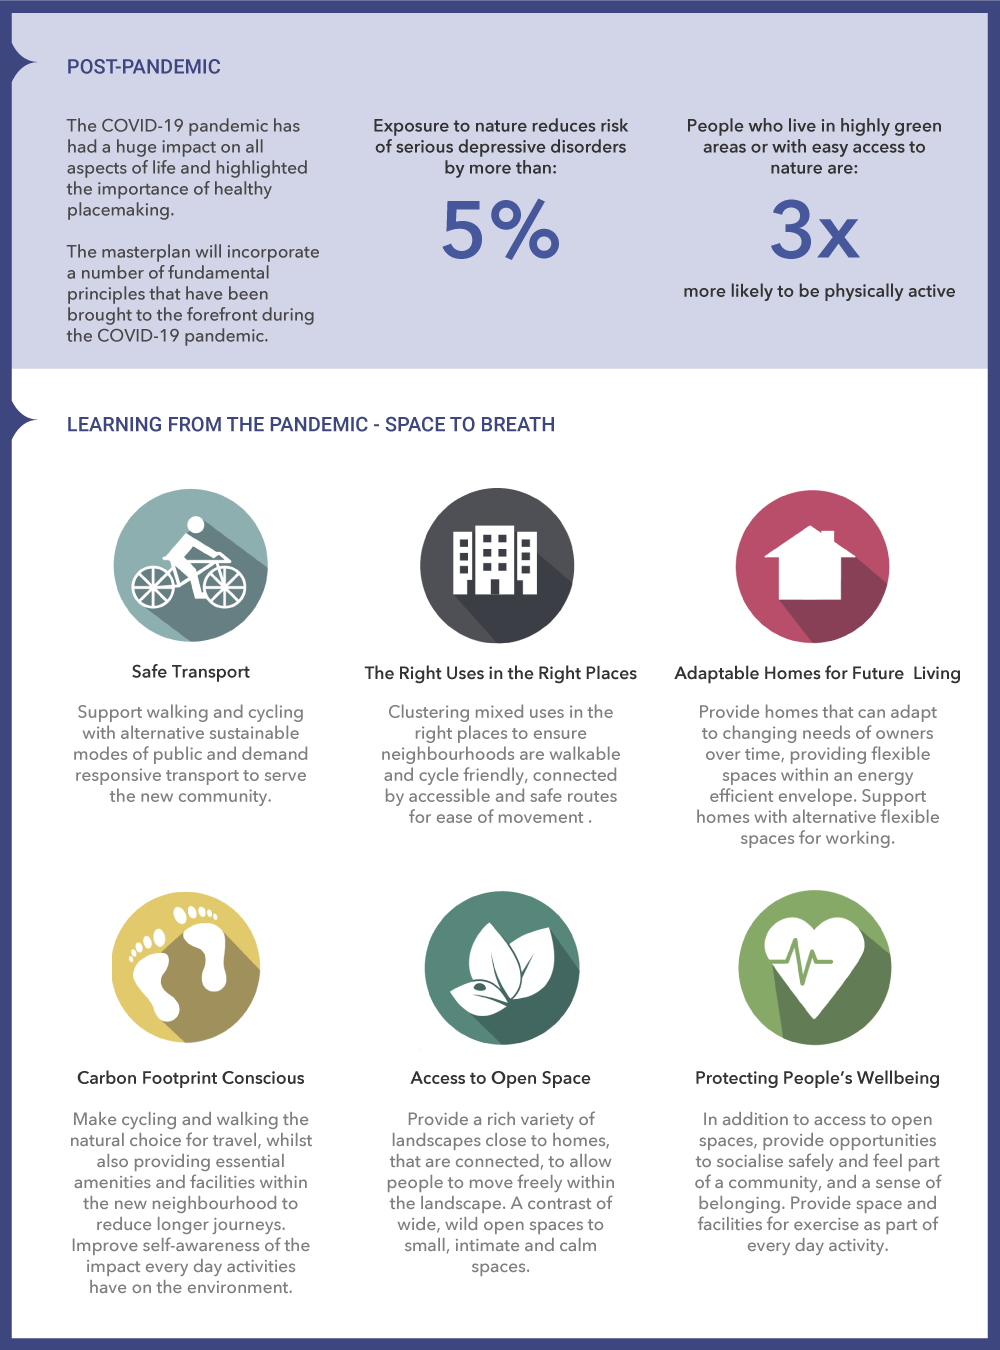 Learning from the Pandemic Infographic